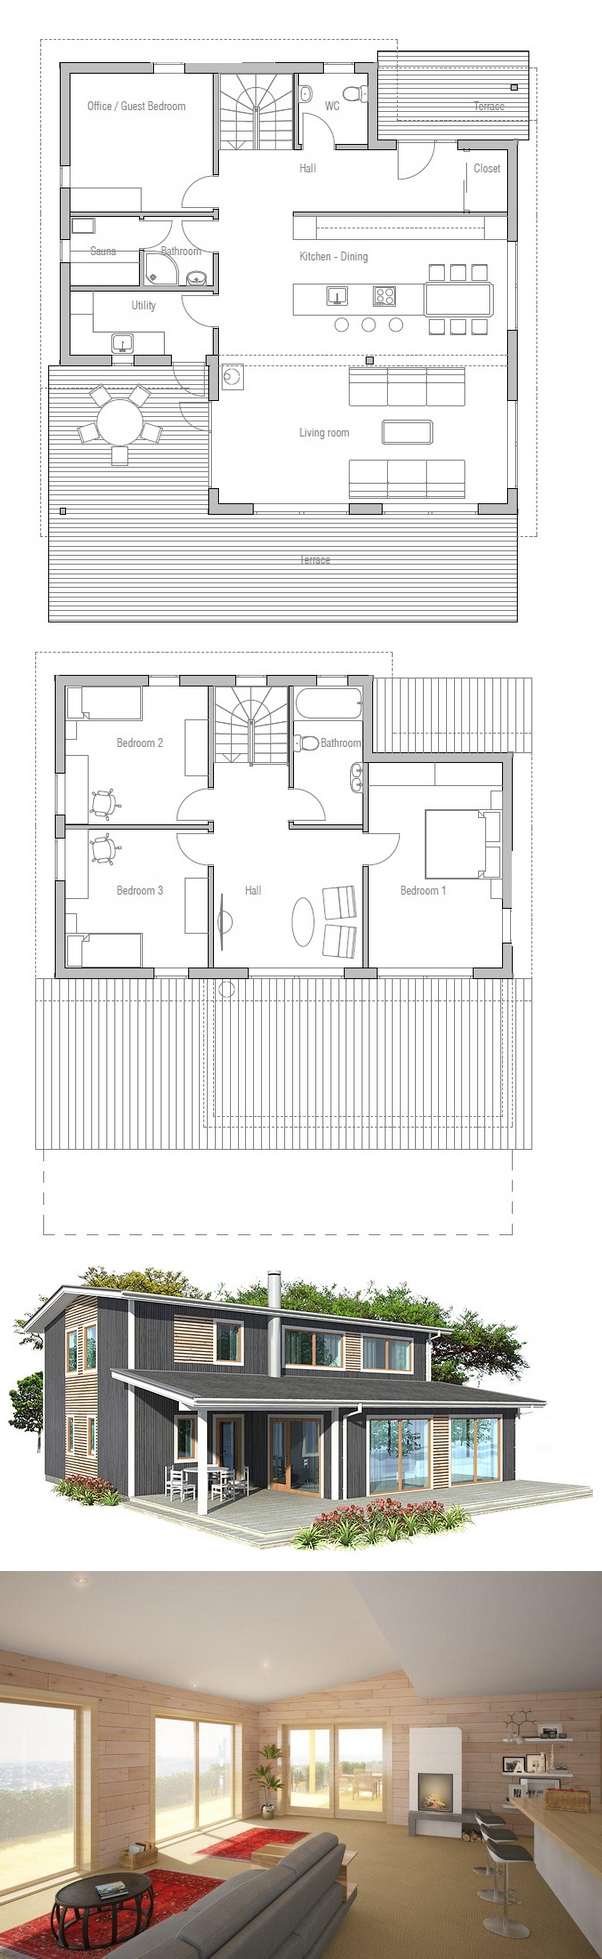 1000+ images about House House plans, House art and ...